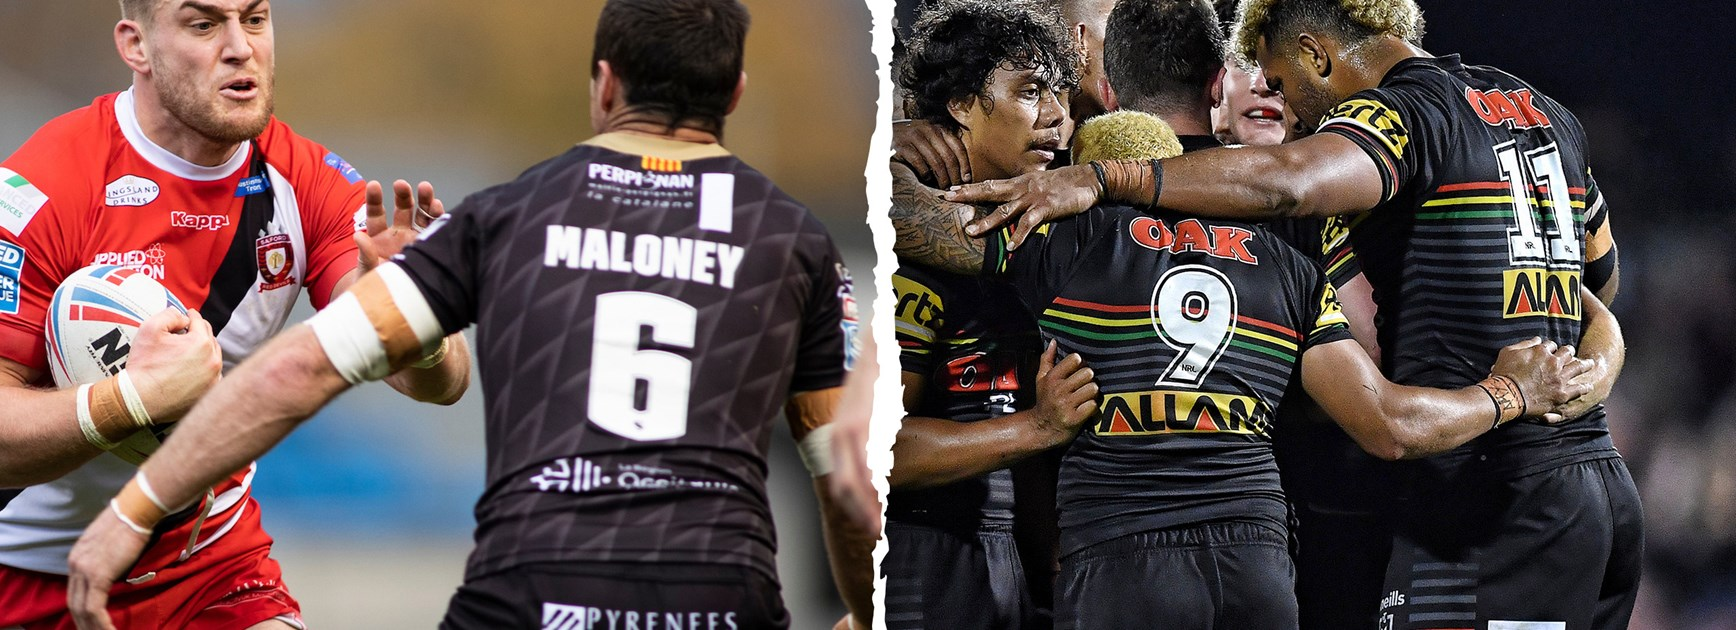 For & Against: Should players have designated numbers and surnames on jerseys?